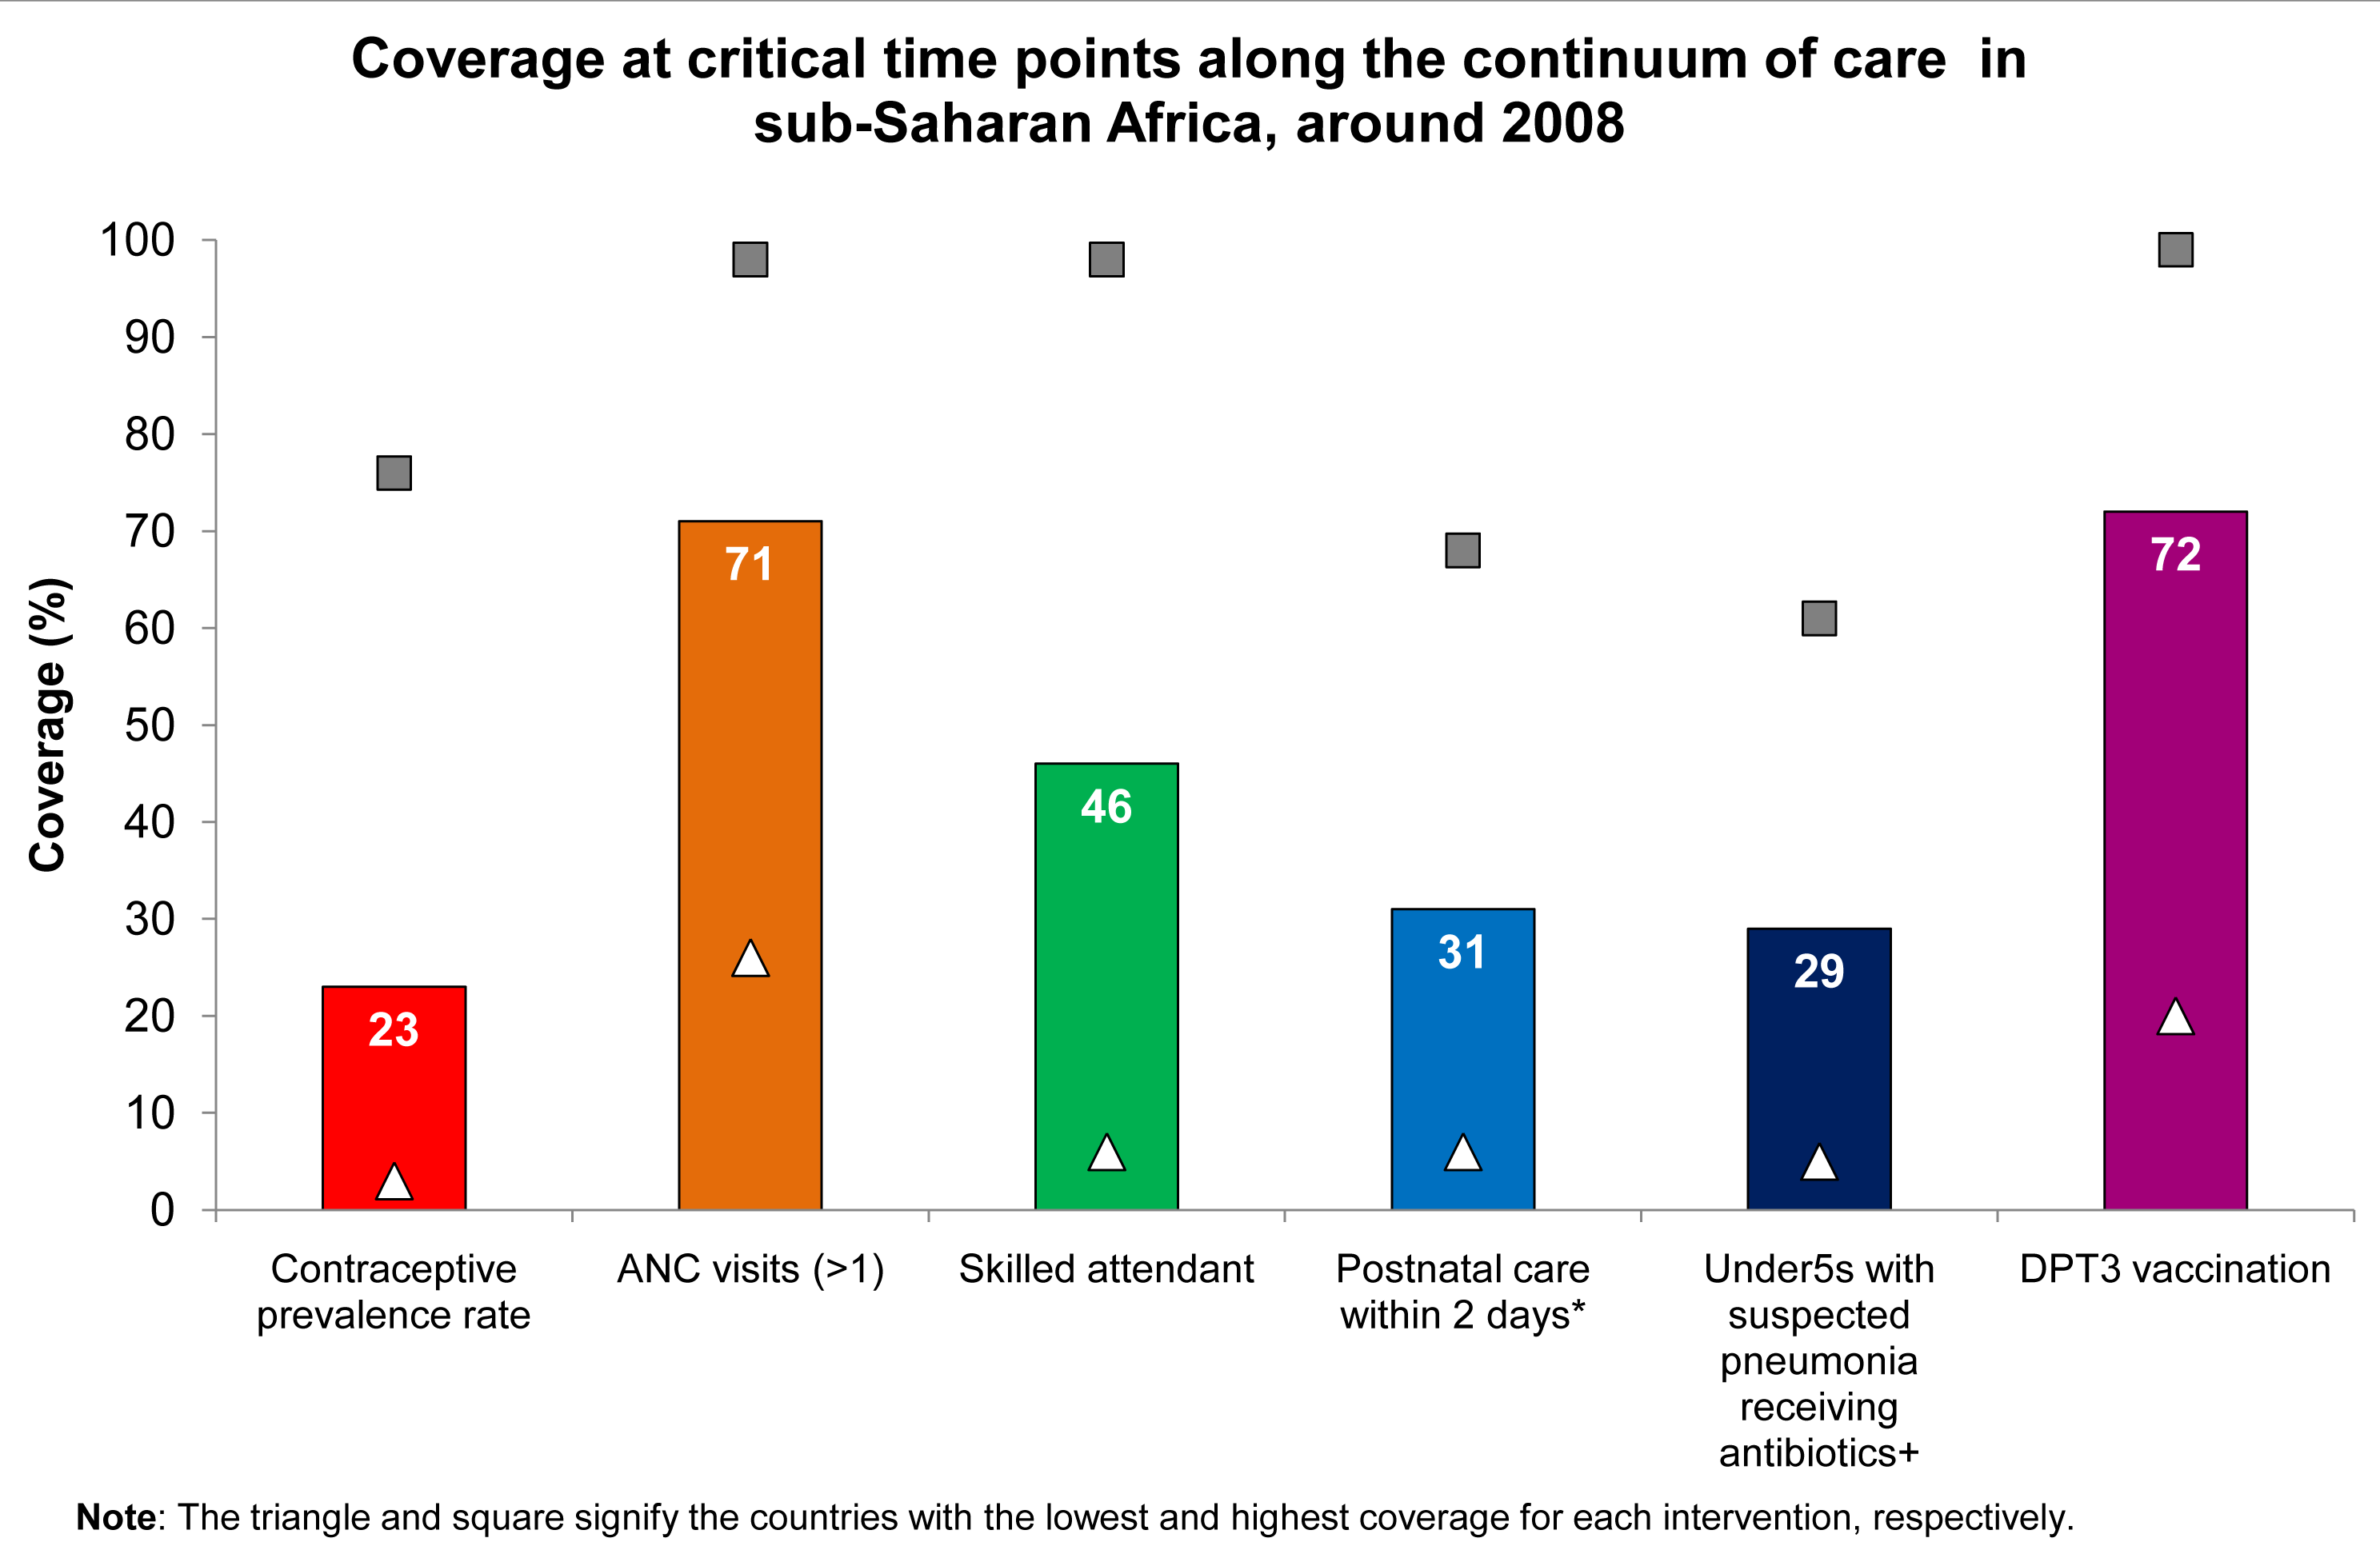 Coverage at critical time points along the continuum of care in sub-Saharan Africa, around the year 2008.